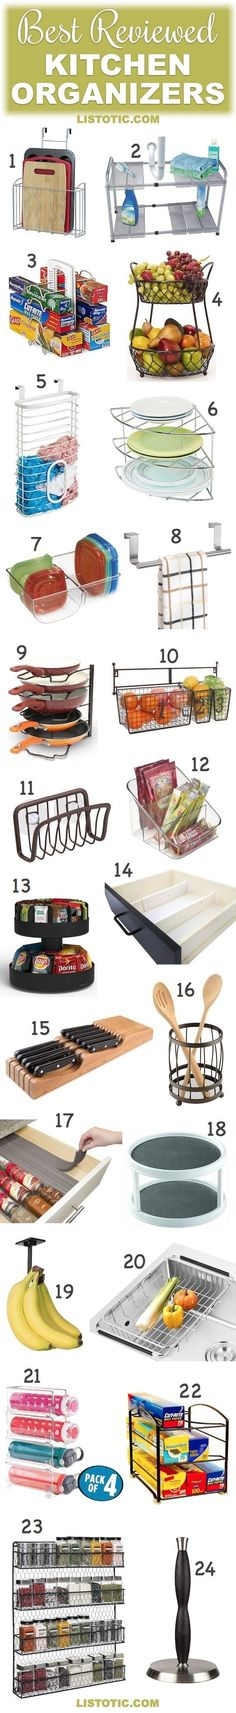 Trendy kitchen pantry organizers small spaces ideas - Kitchen Ideas & Inspiration on a Budget, DIY Farmhouse kitchen, Small kitchen Remodeling, White Trendy kitchen pantry organizers small spaces ideas Trendy kitchen pantry organizers small spaces ideas Kitchen Organization Pantry, Kitchen Shelves, Kitchen Pantry, New Kitchen, Kitchen Storage, Home Organization, Kitchen Decor, Kitchen Organizers, Pantry Cabinets